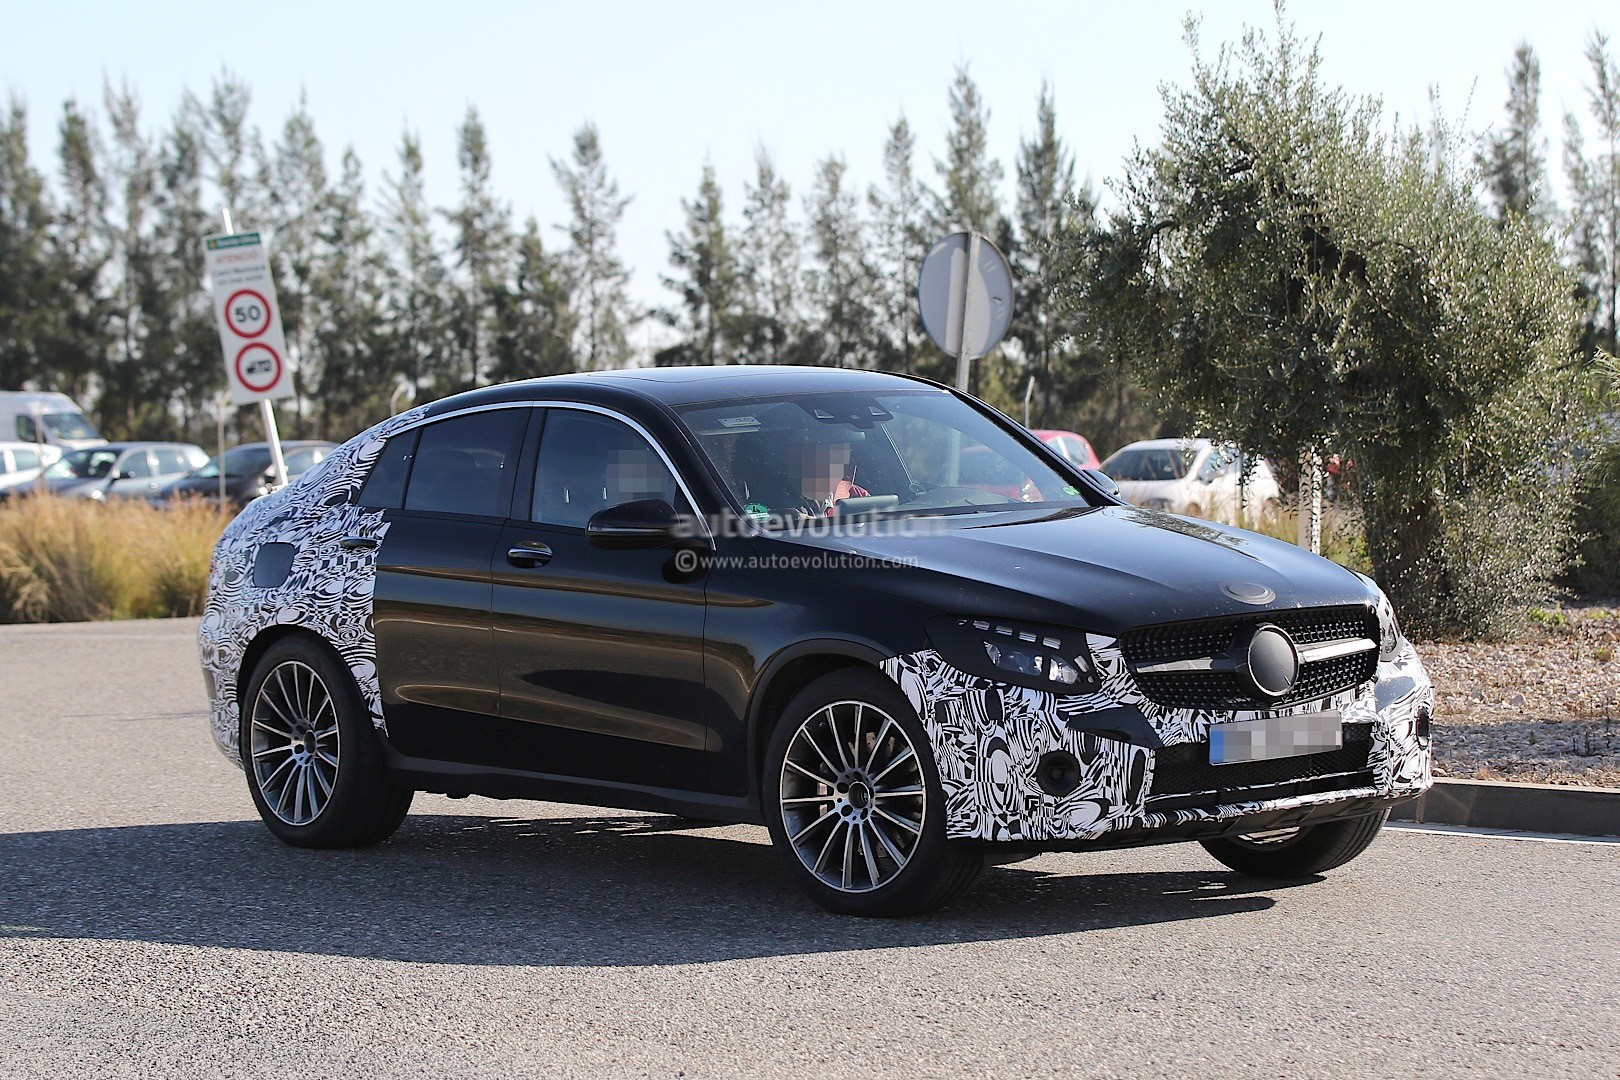 2017 Mercedes-Benz GLC450 AMG Coupe Spied for the First Time